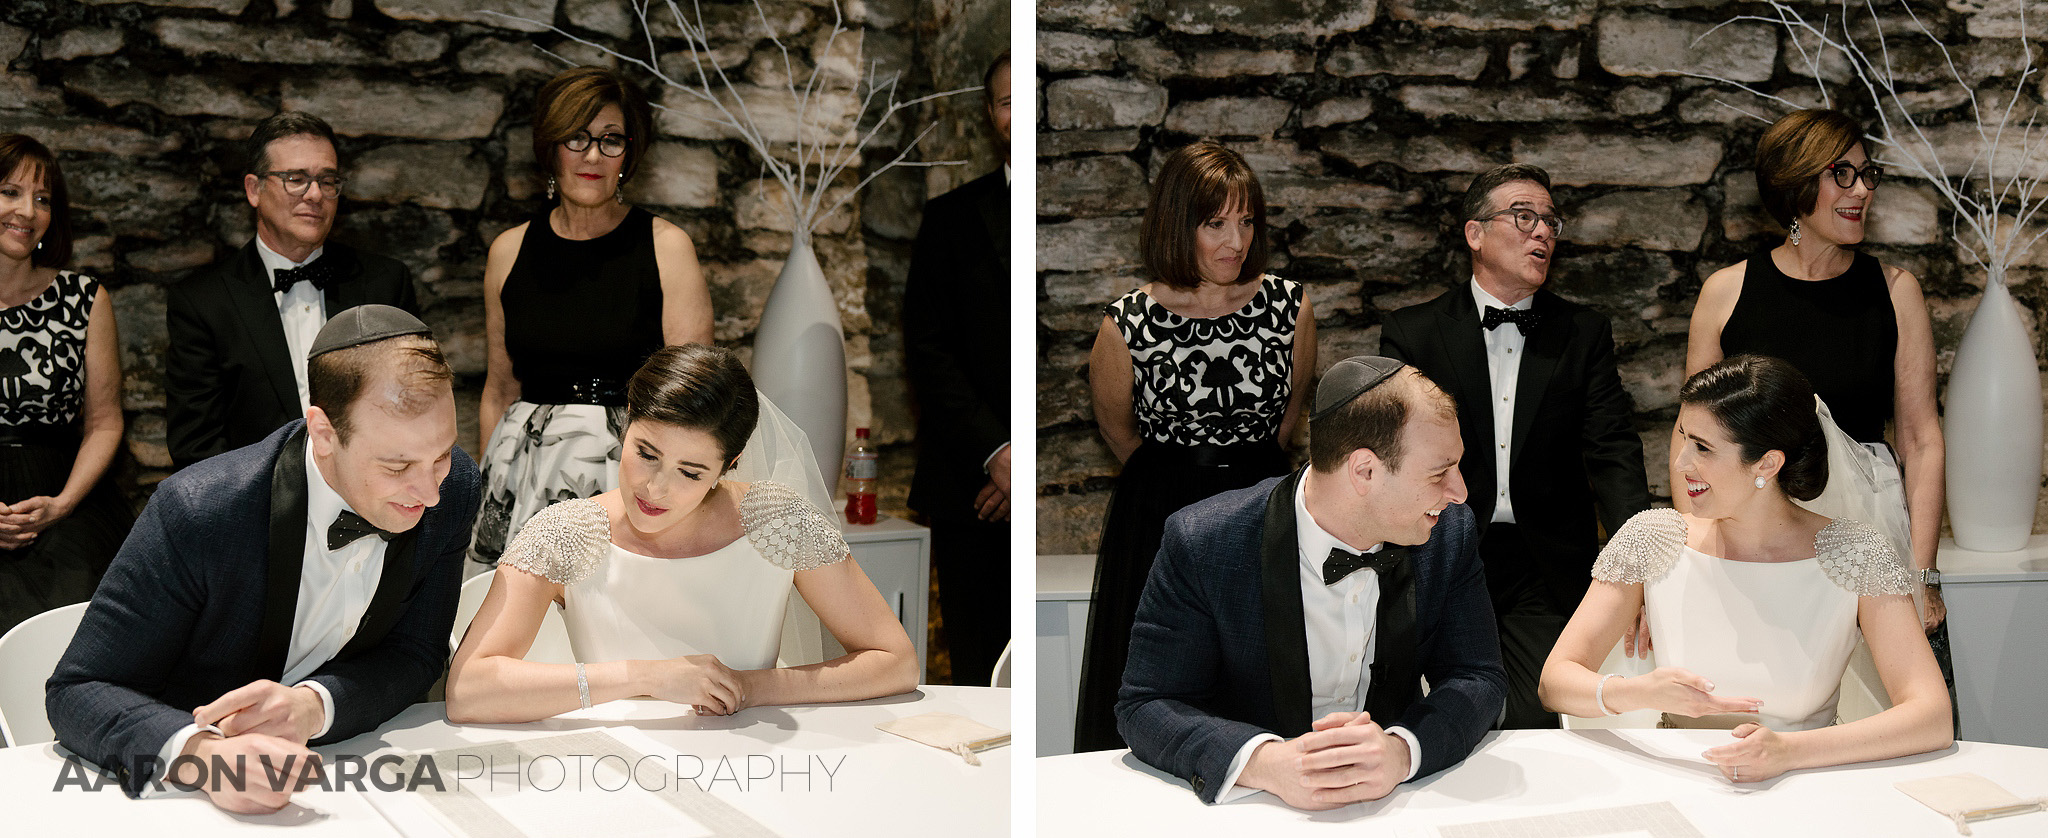 28 ketubah signing wedding - Mimi + Mike | Hotel Monaco and J. Verno Studios Wedding Photos